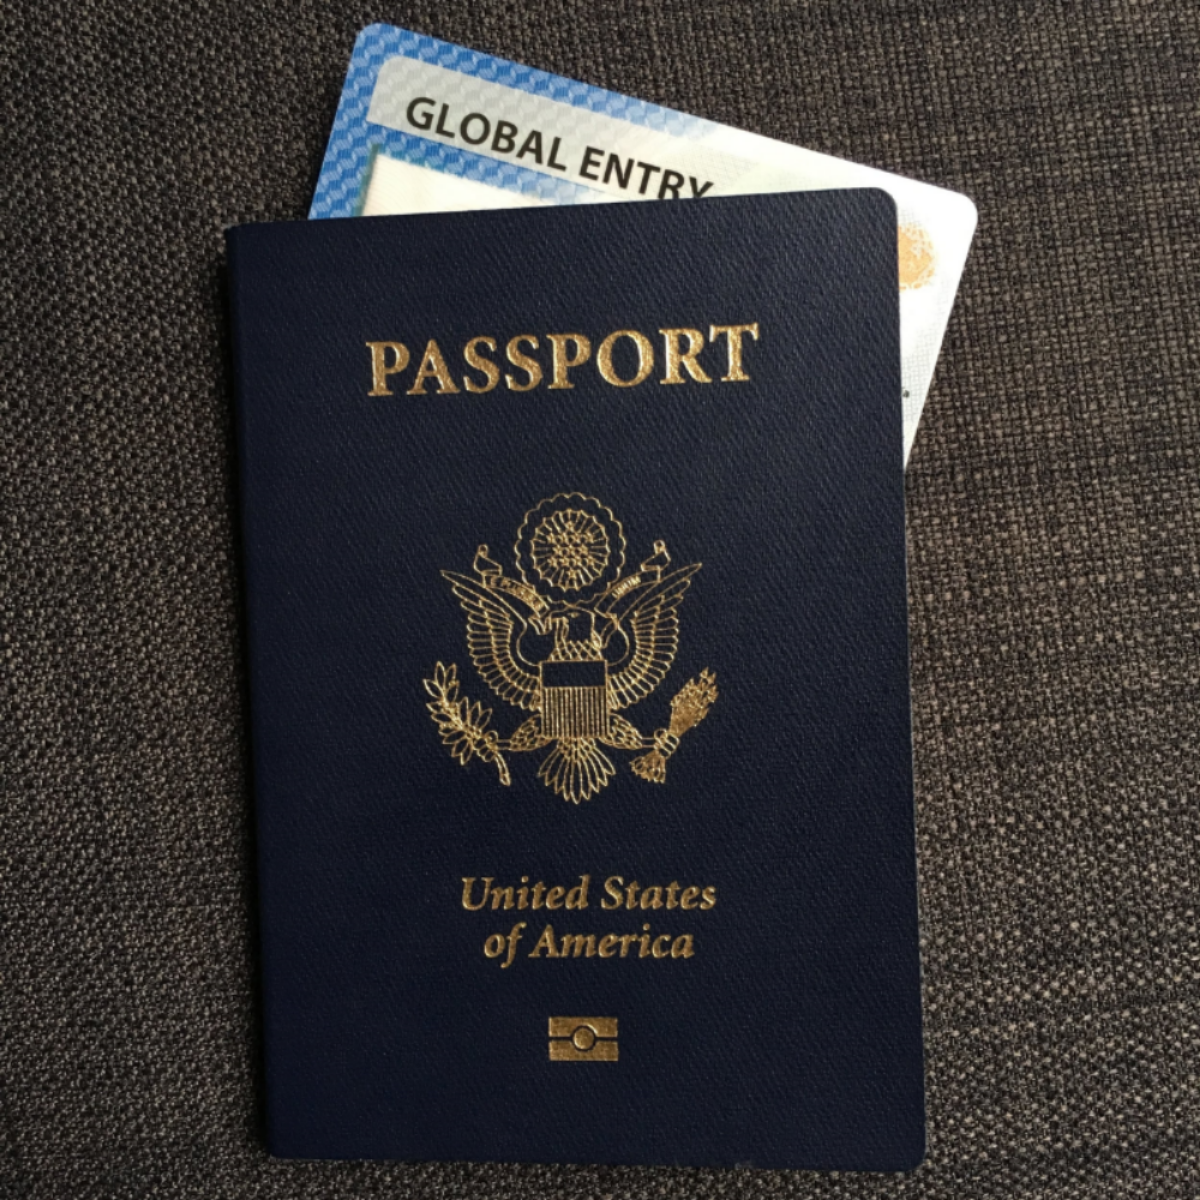 Global Entry: You'll wonder how you ever traveled without it!